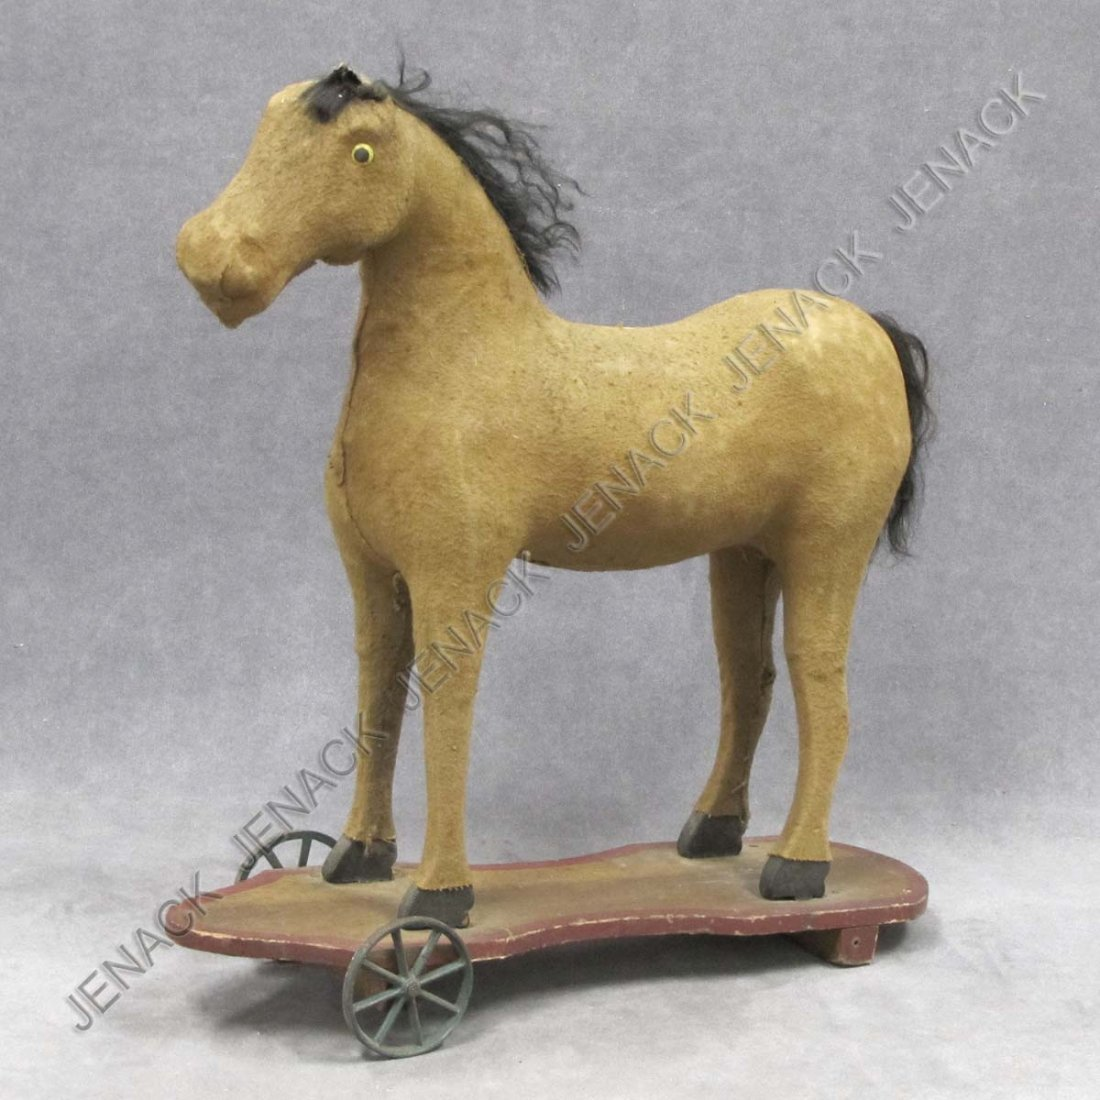 6: VINTAGE FELT COVERED CHILD'S HORSE PULL TOY